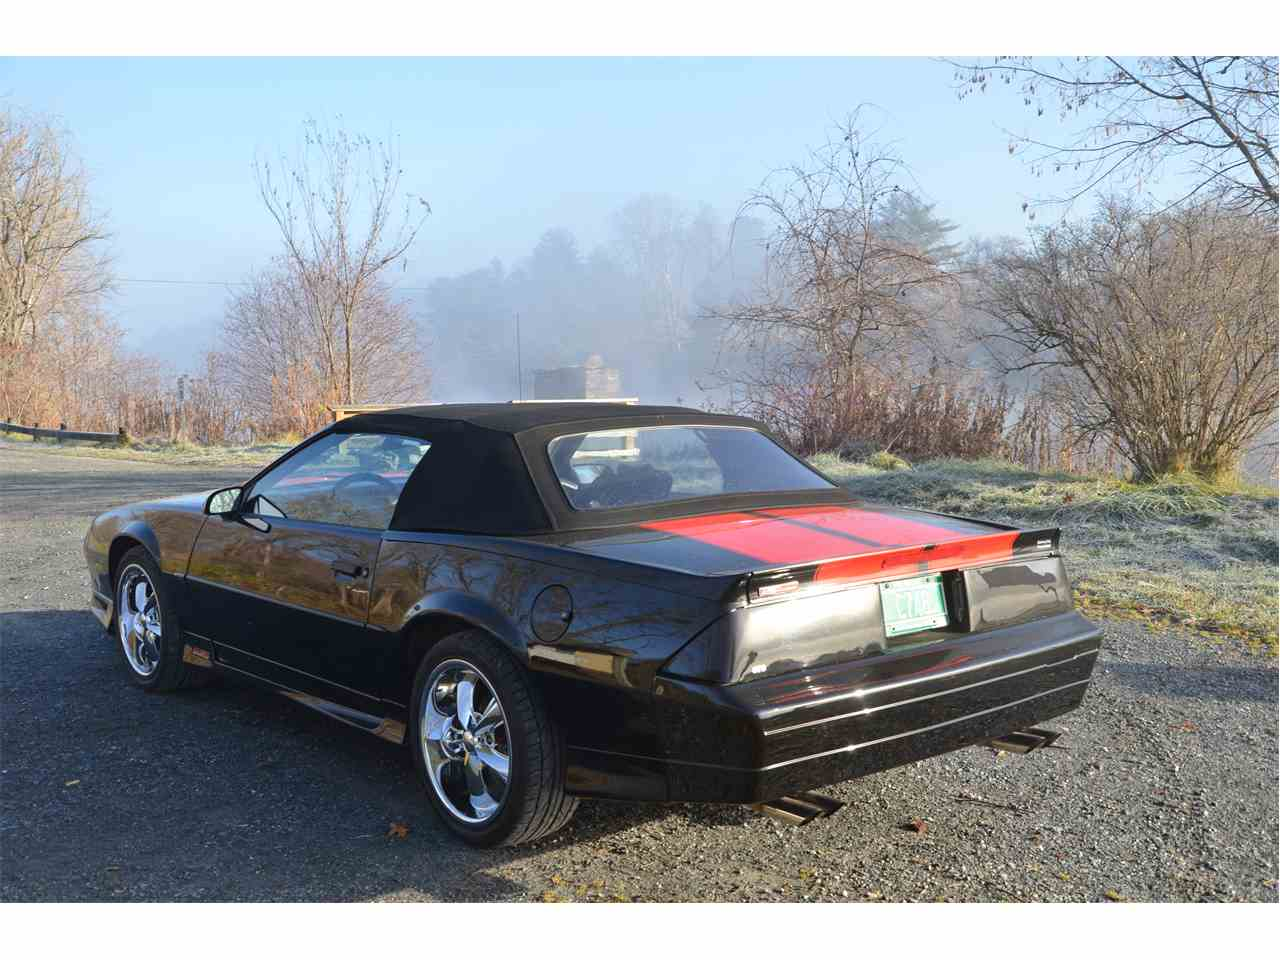 Large Picture of '92 Chevrolet Camaro Z28 located in North Thetford Vermont Offered by a Private Seller - LBBW